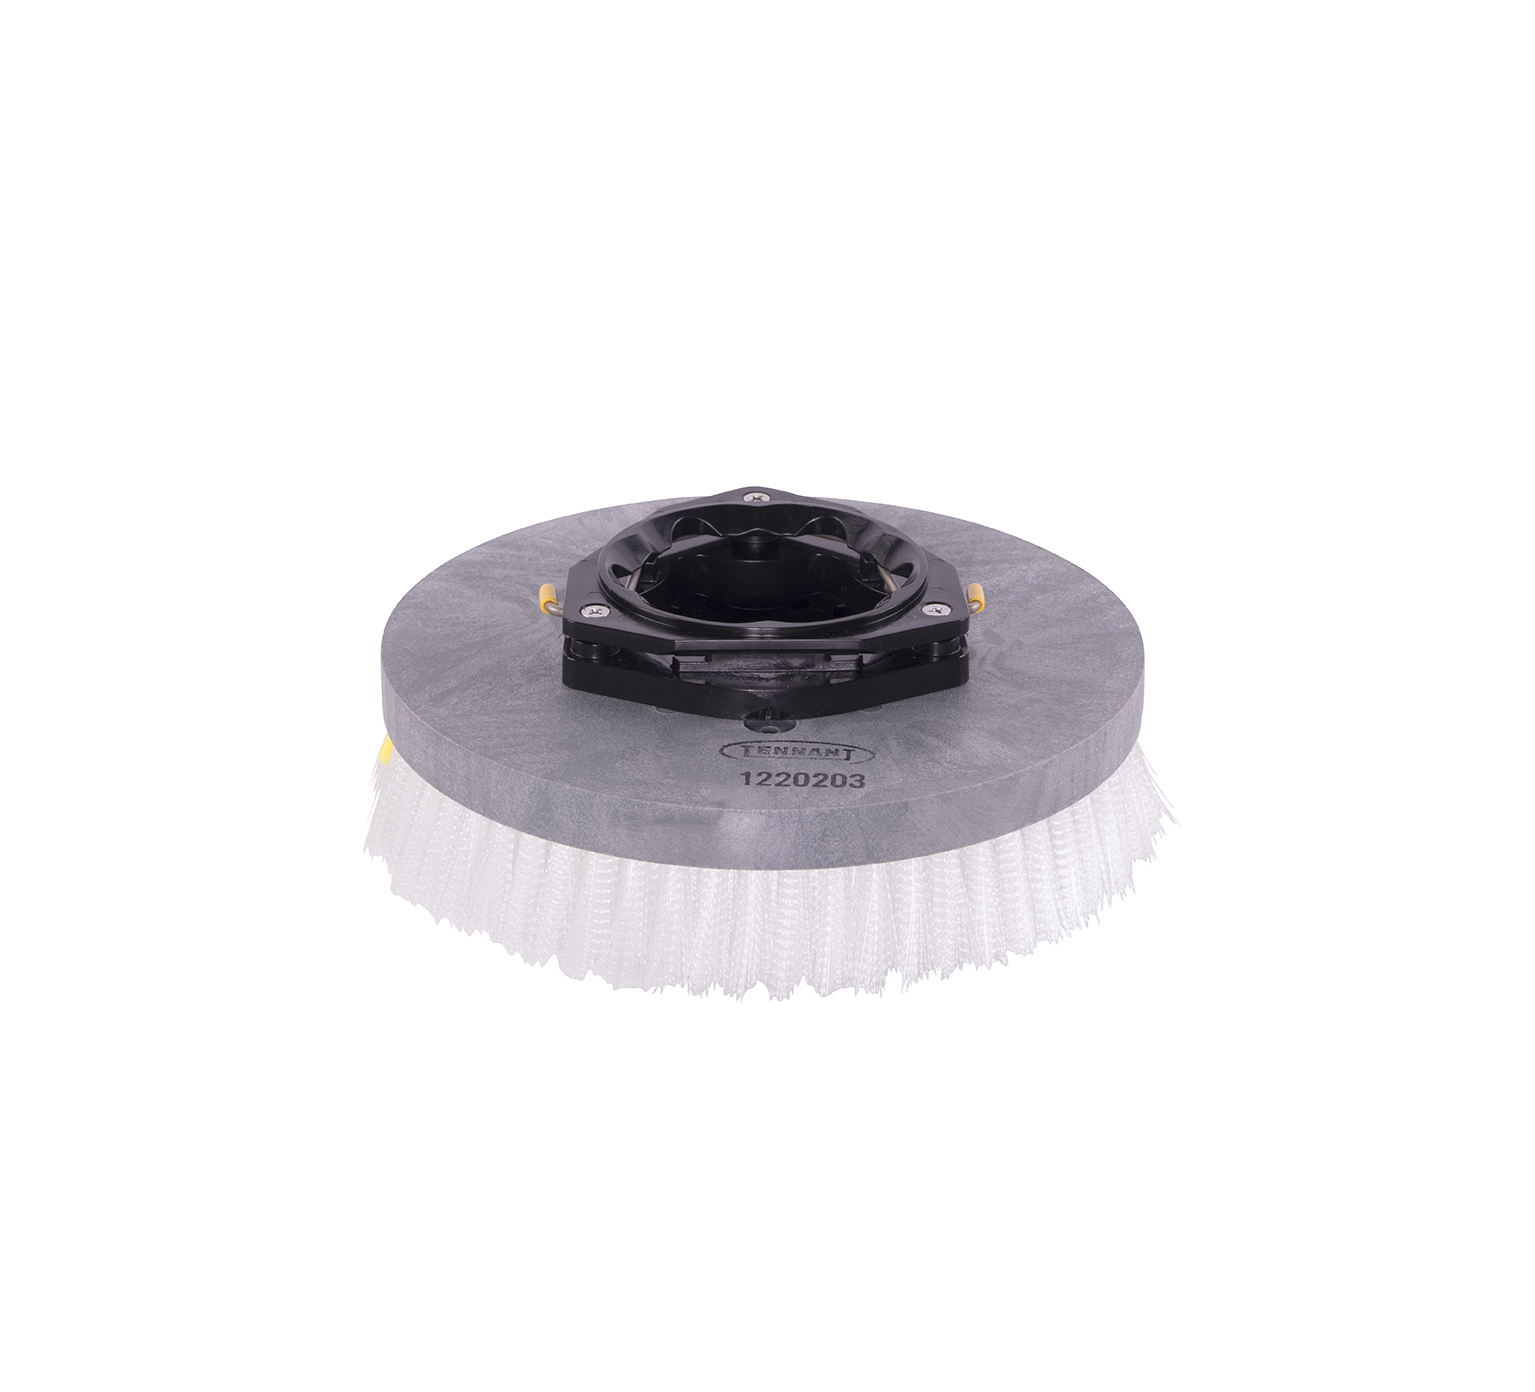 1220203 Nylon Disk Scrub Brush Assembly – 12 in / 304.8 mm alt 1